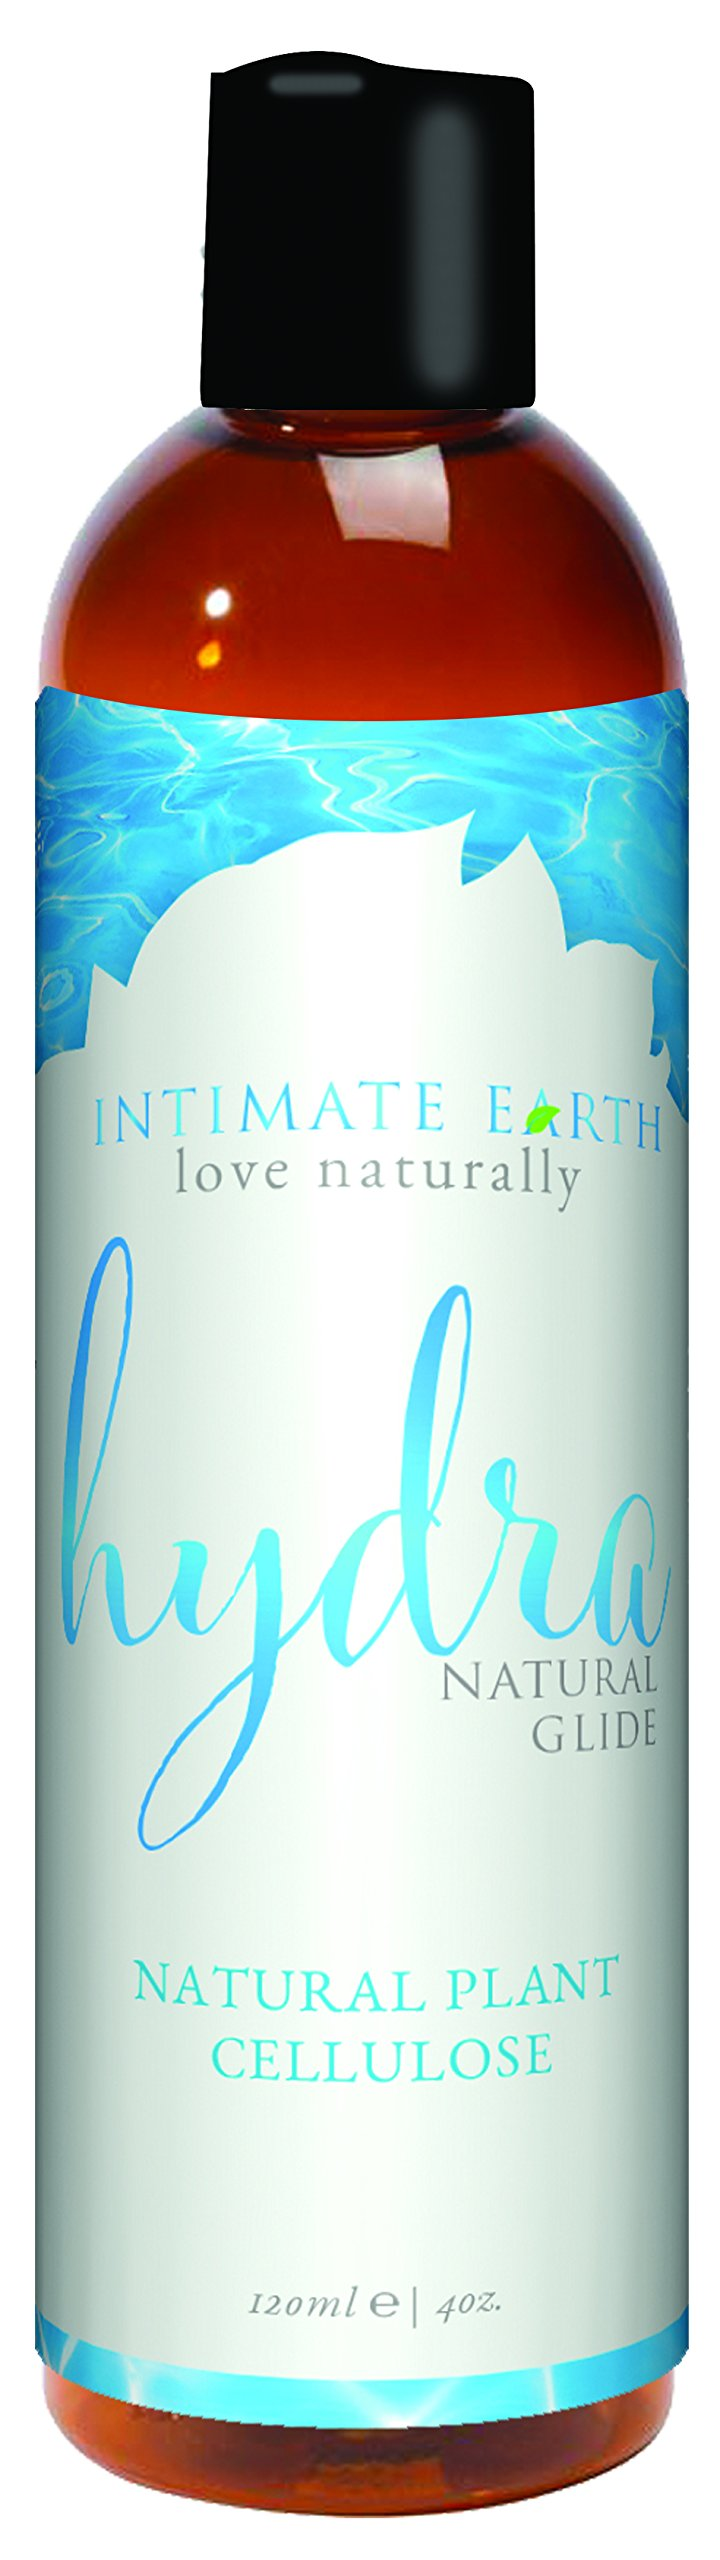 Intimate Organics Water Based Lubricant Hydra, 4 Ounce by Intimate Organics